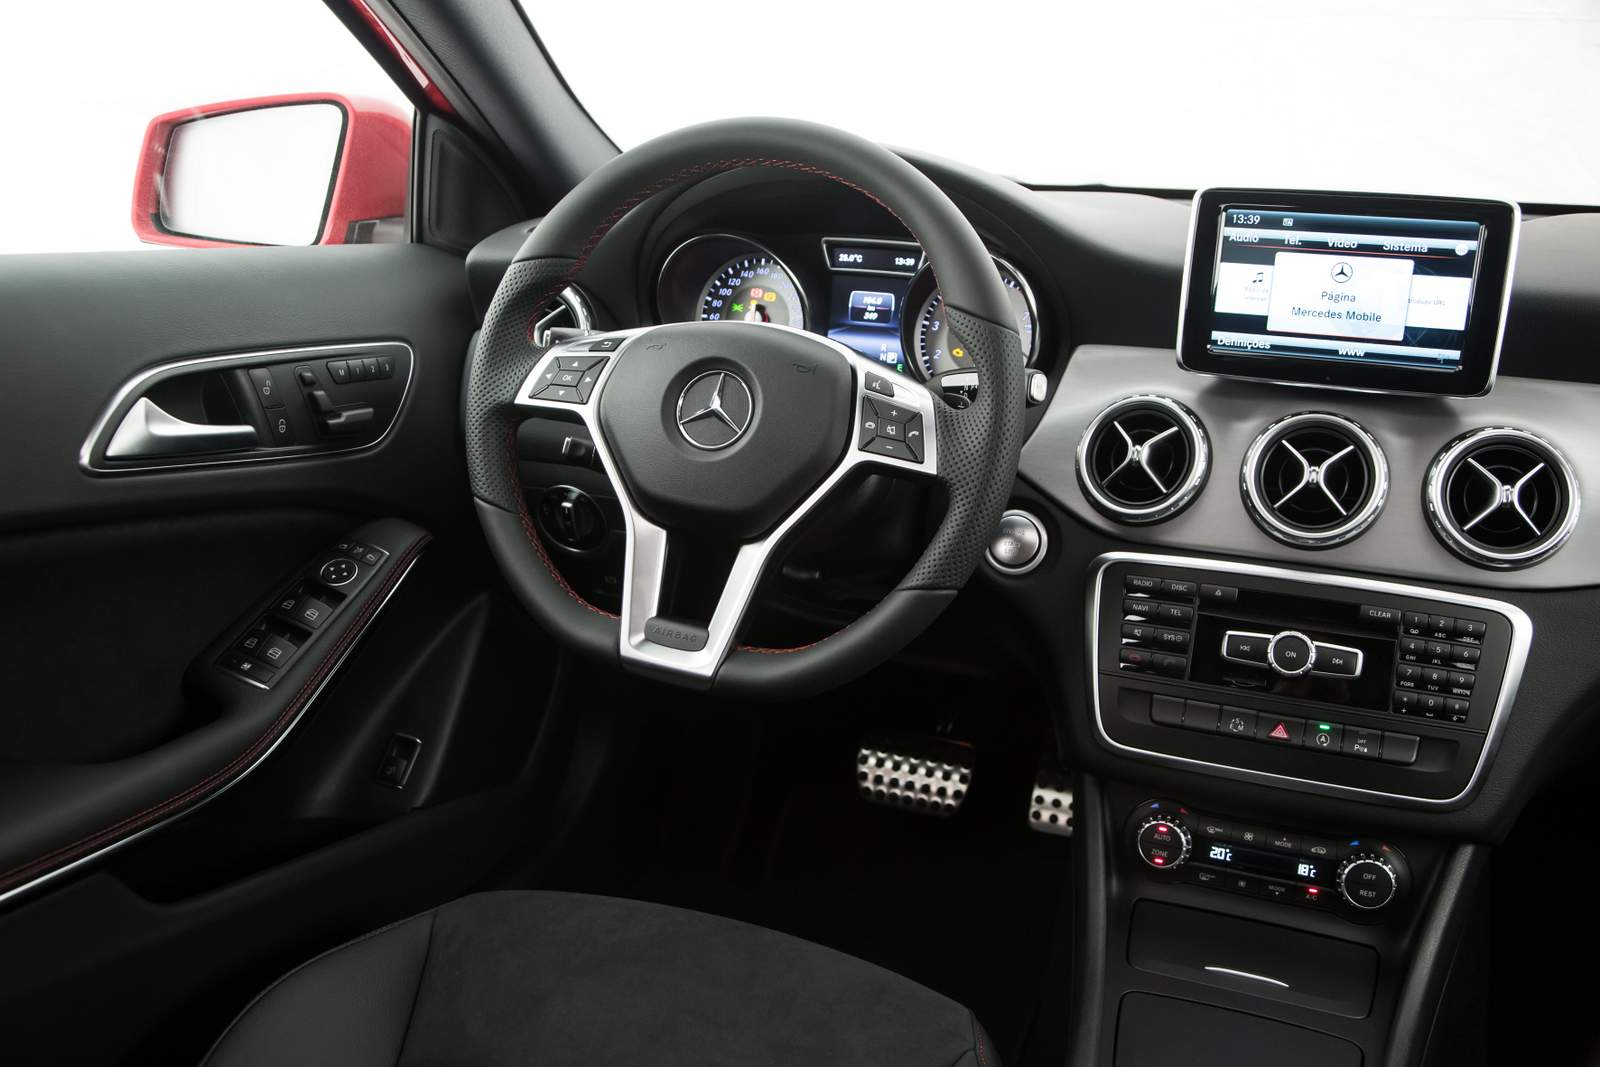 Mercedes-Benz GLA 2015 - interior